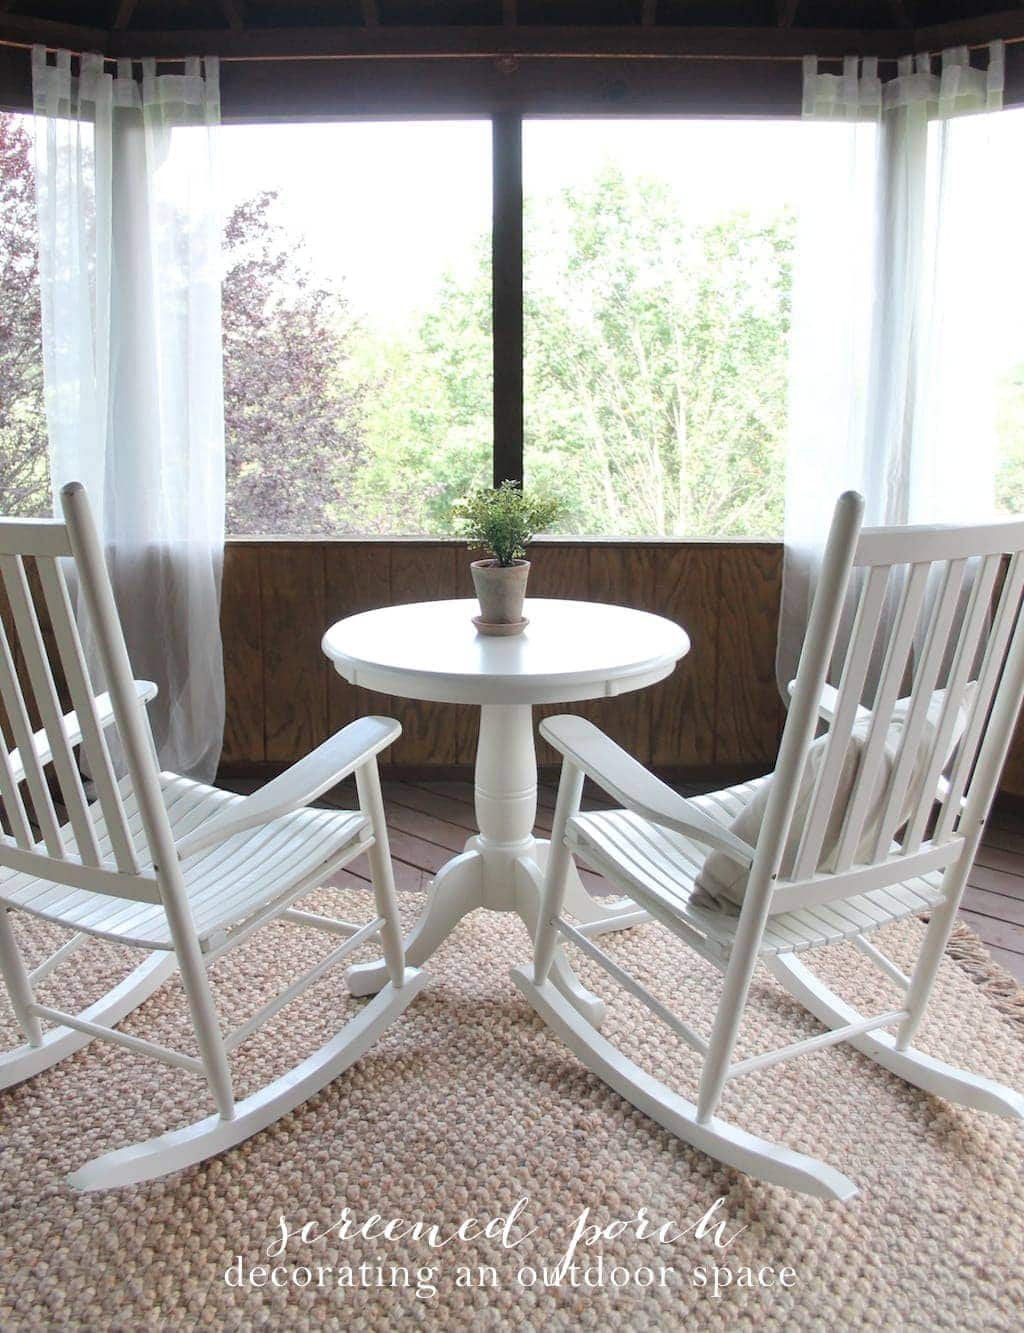 Screened porch - learn how to decorate an outdoor space